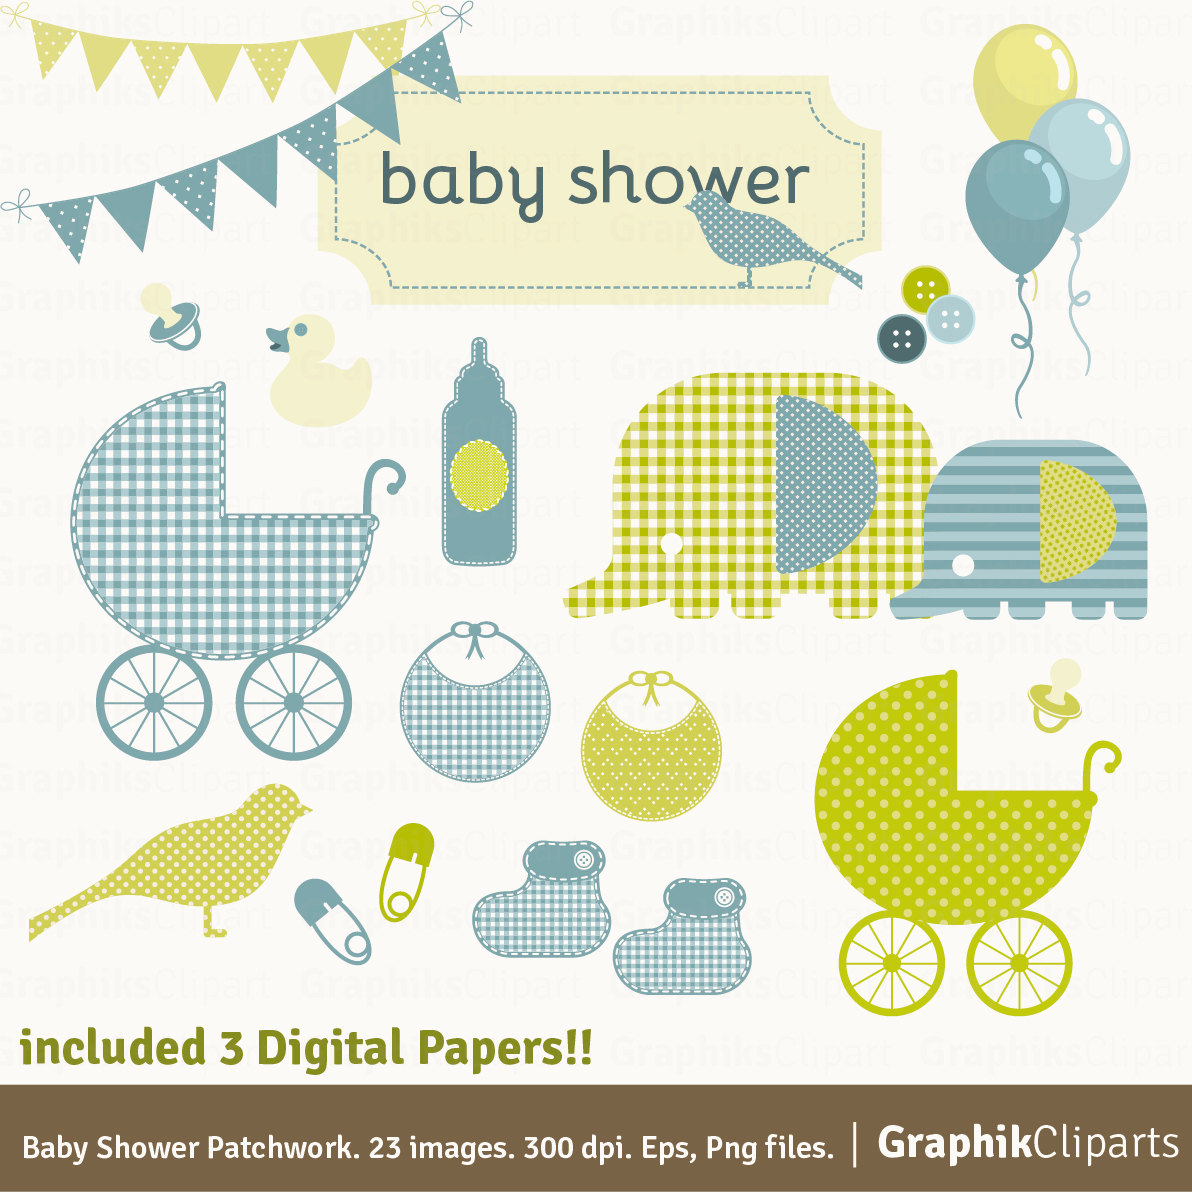 Patchwork clipart baby shower Patchwork is